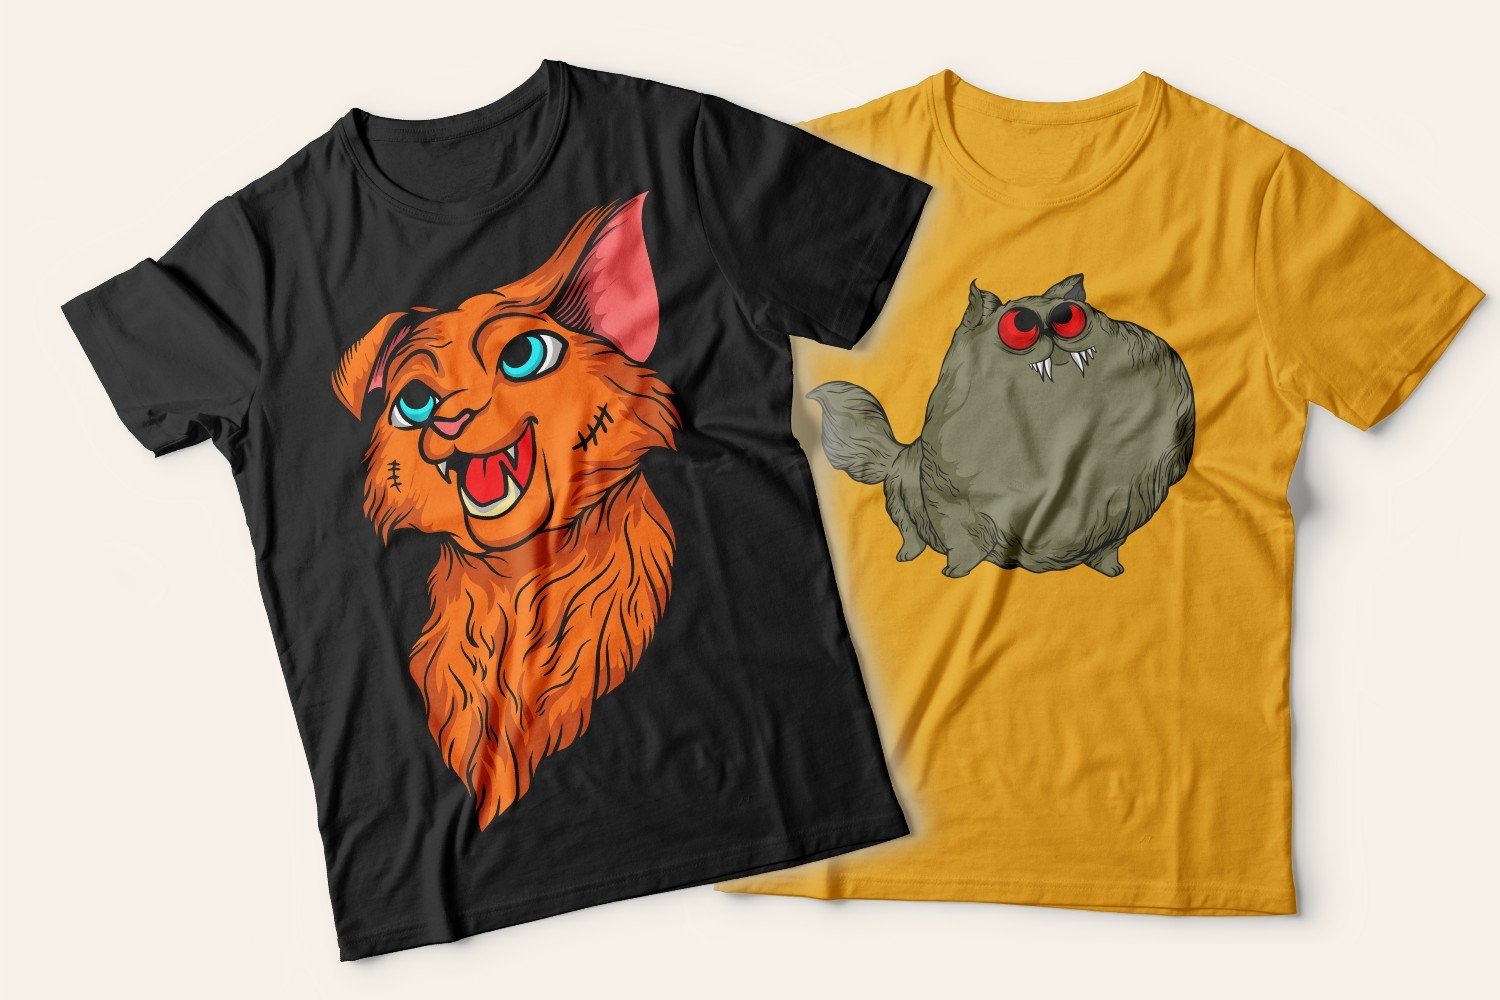 Two T-shirts with cats: one is black with a red-haired yard cat, the other is yellow with a fat happy cat.